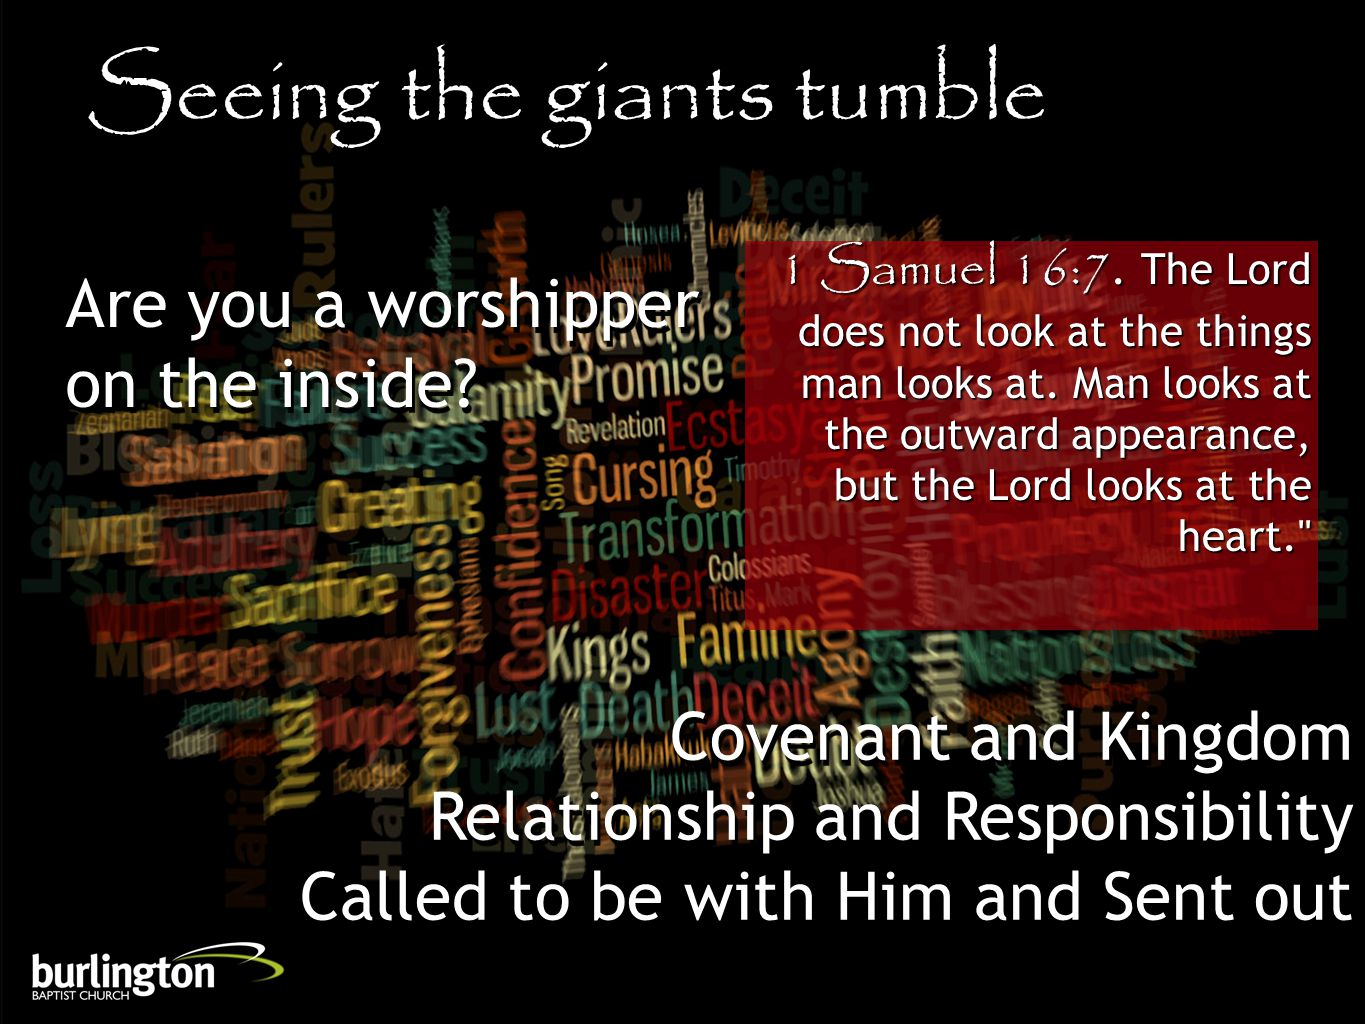 1 Samuel 16:7. The Lord does not look at the things man looks at.